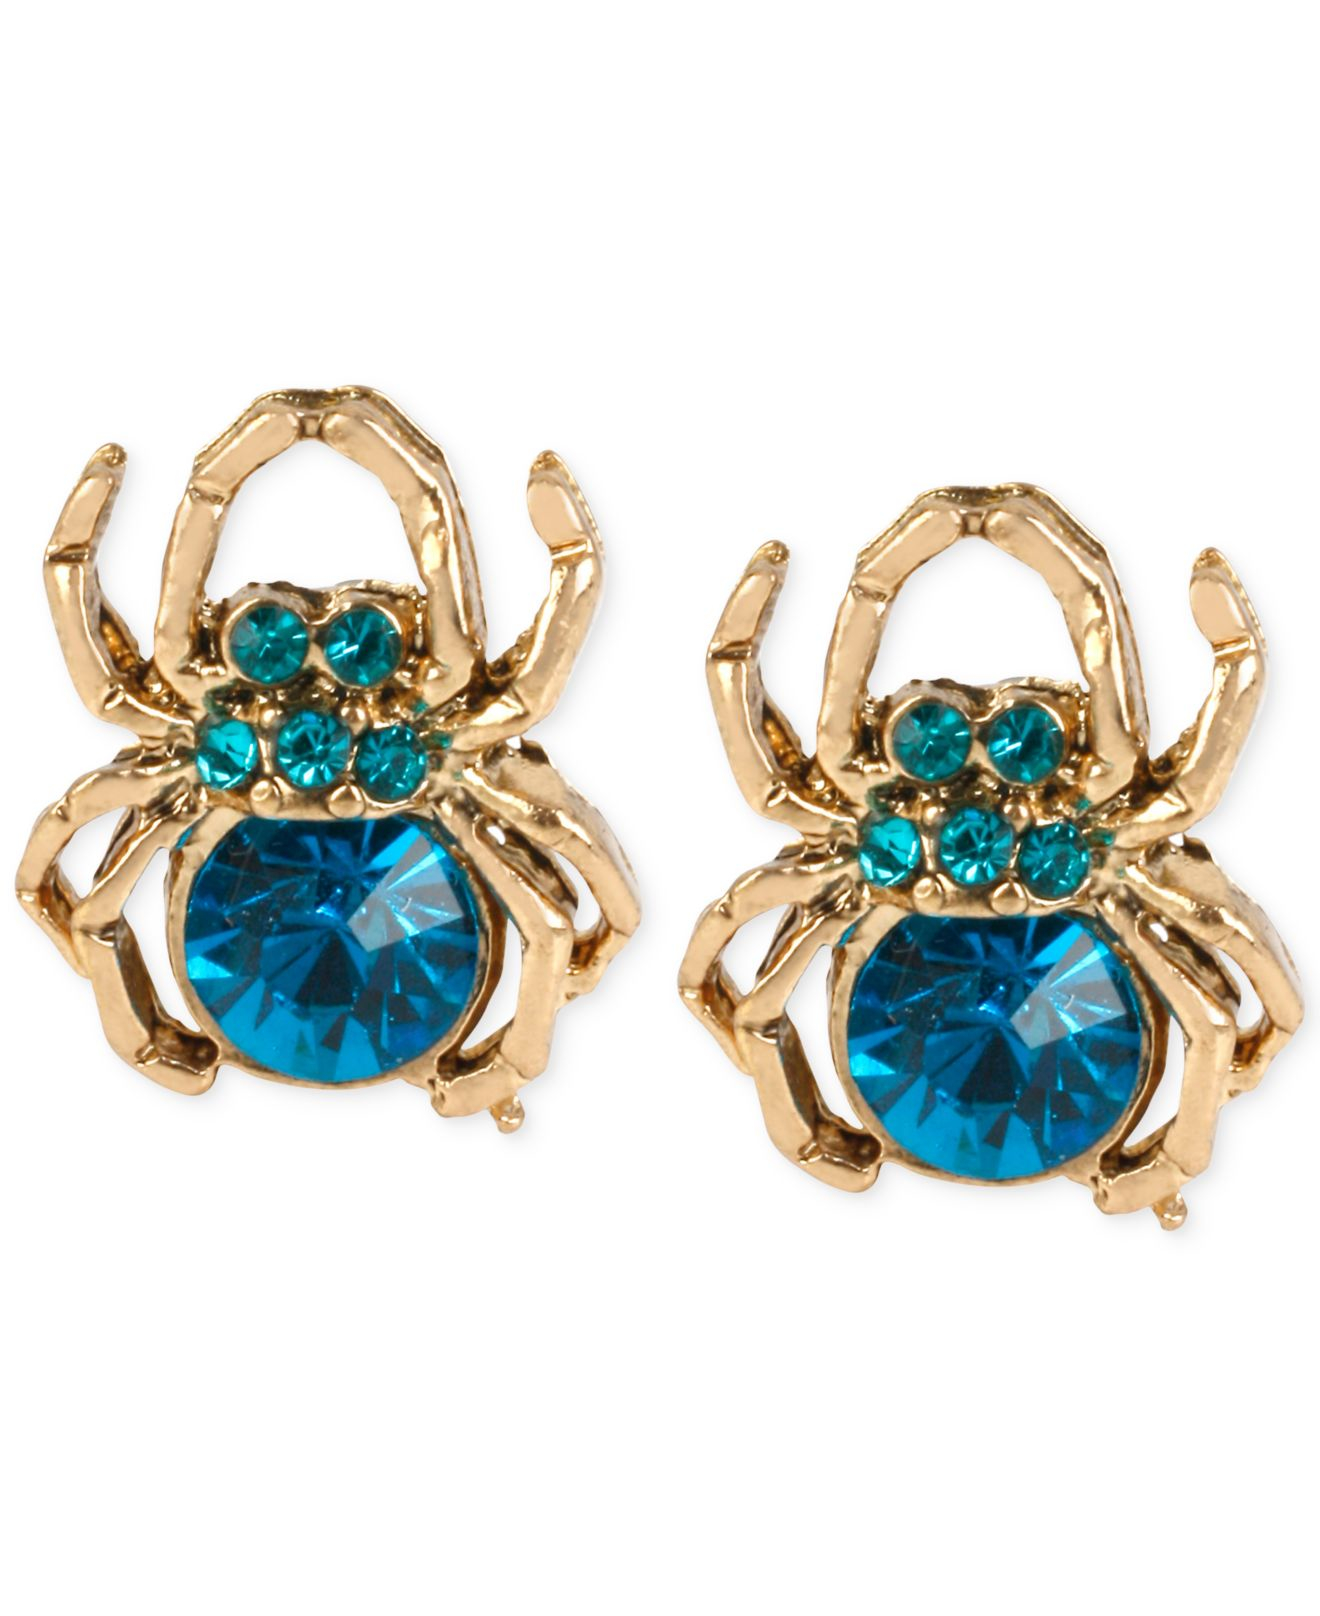 Betsey Johnson Gold Tone Blue Stone Spider Stud Earrings In